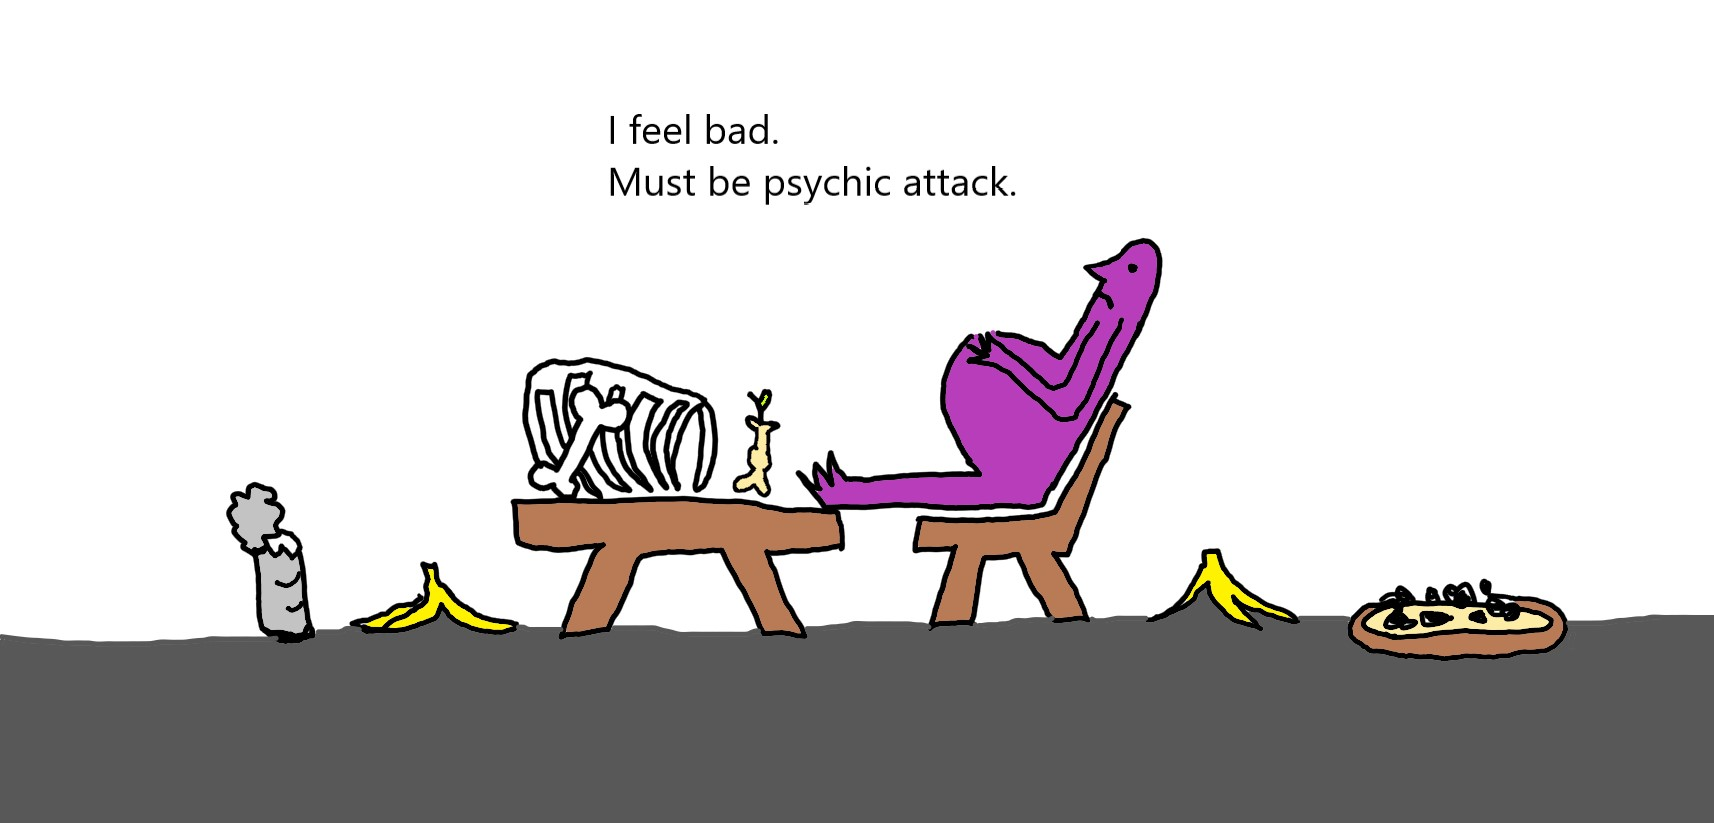 drawing of person who ate too much and thinks they are under psychic attack